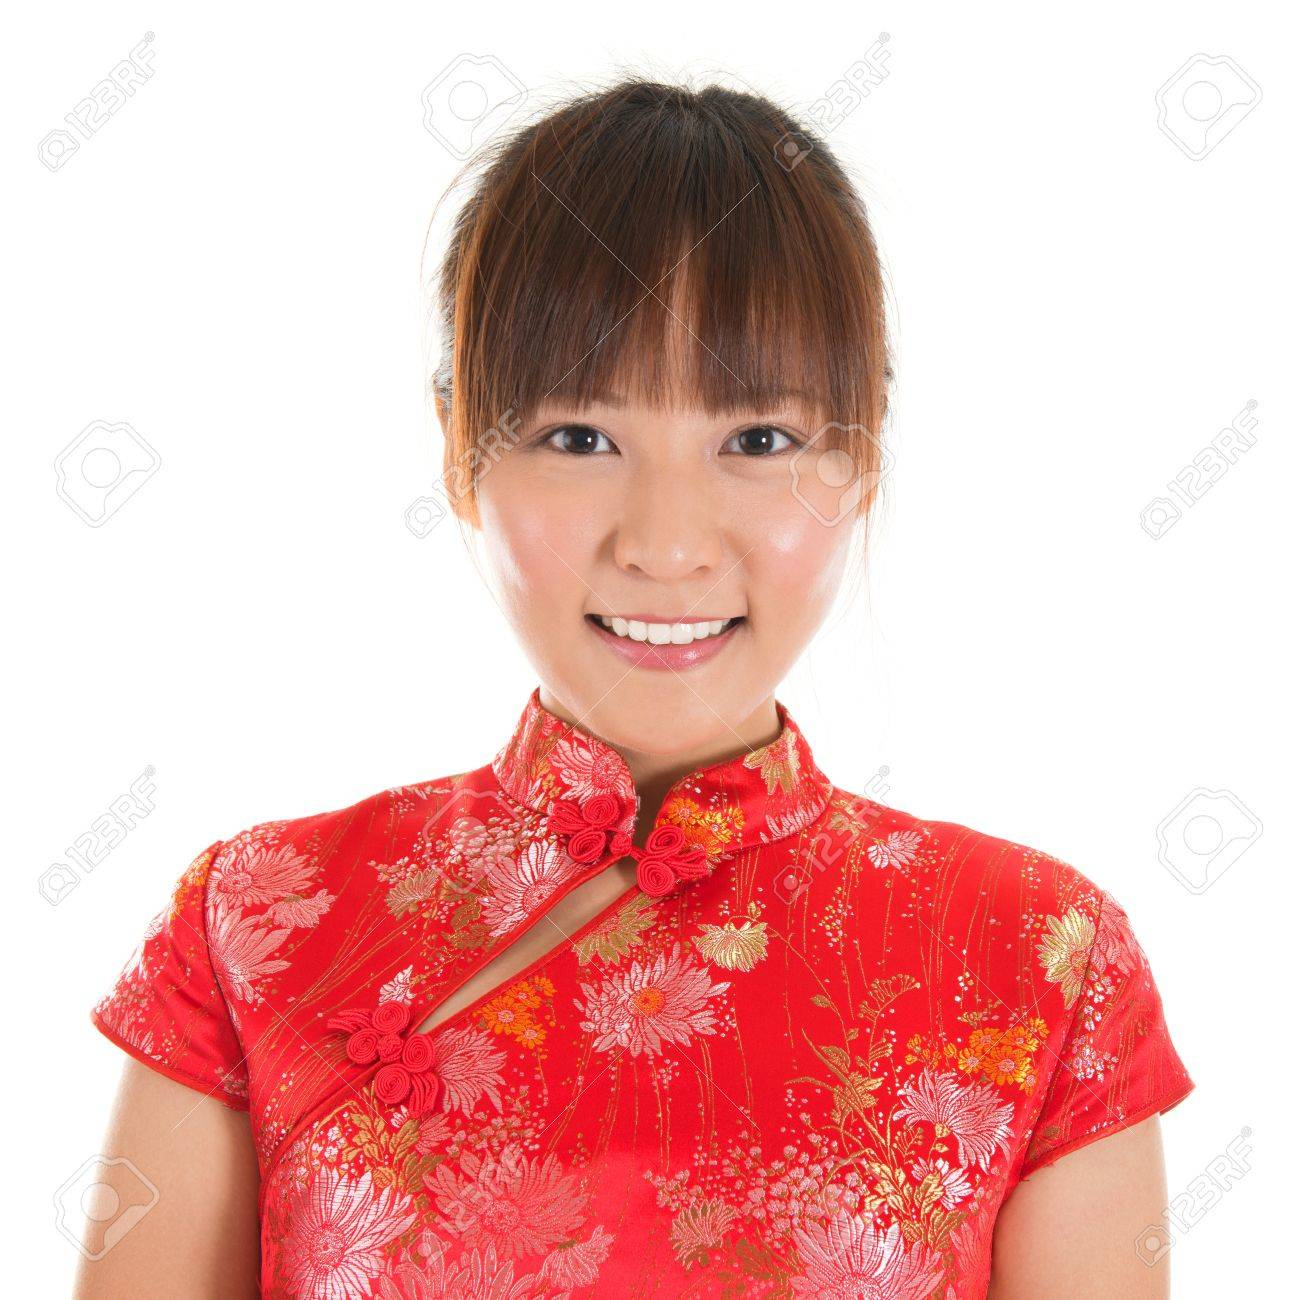 Asian Woman With Chinese Traditional Dress Cheongsam Or Qipao